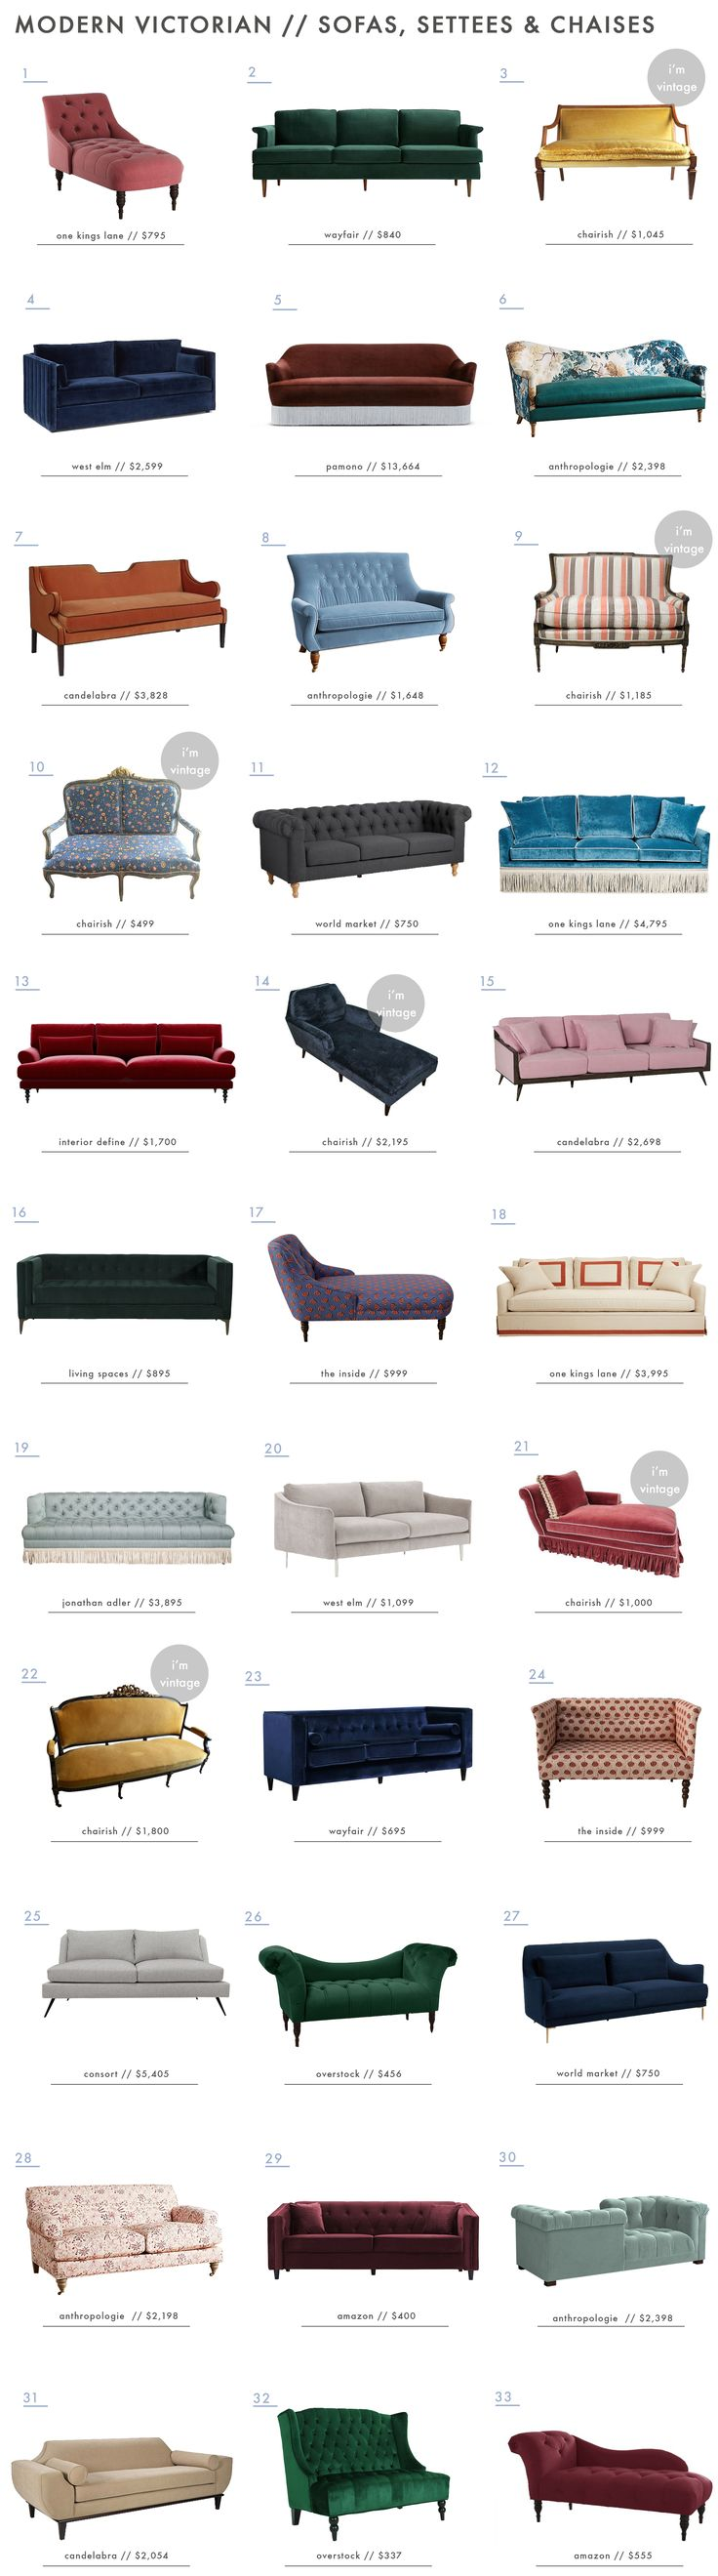 Modern Victorian sofas, settees and chaise Roundup. Think plush, fringe, velvet and lots of color. #sofa #interiordesign #modern #traditional